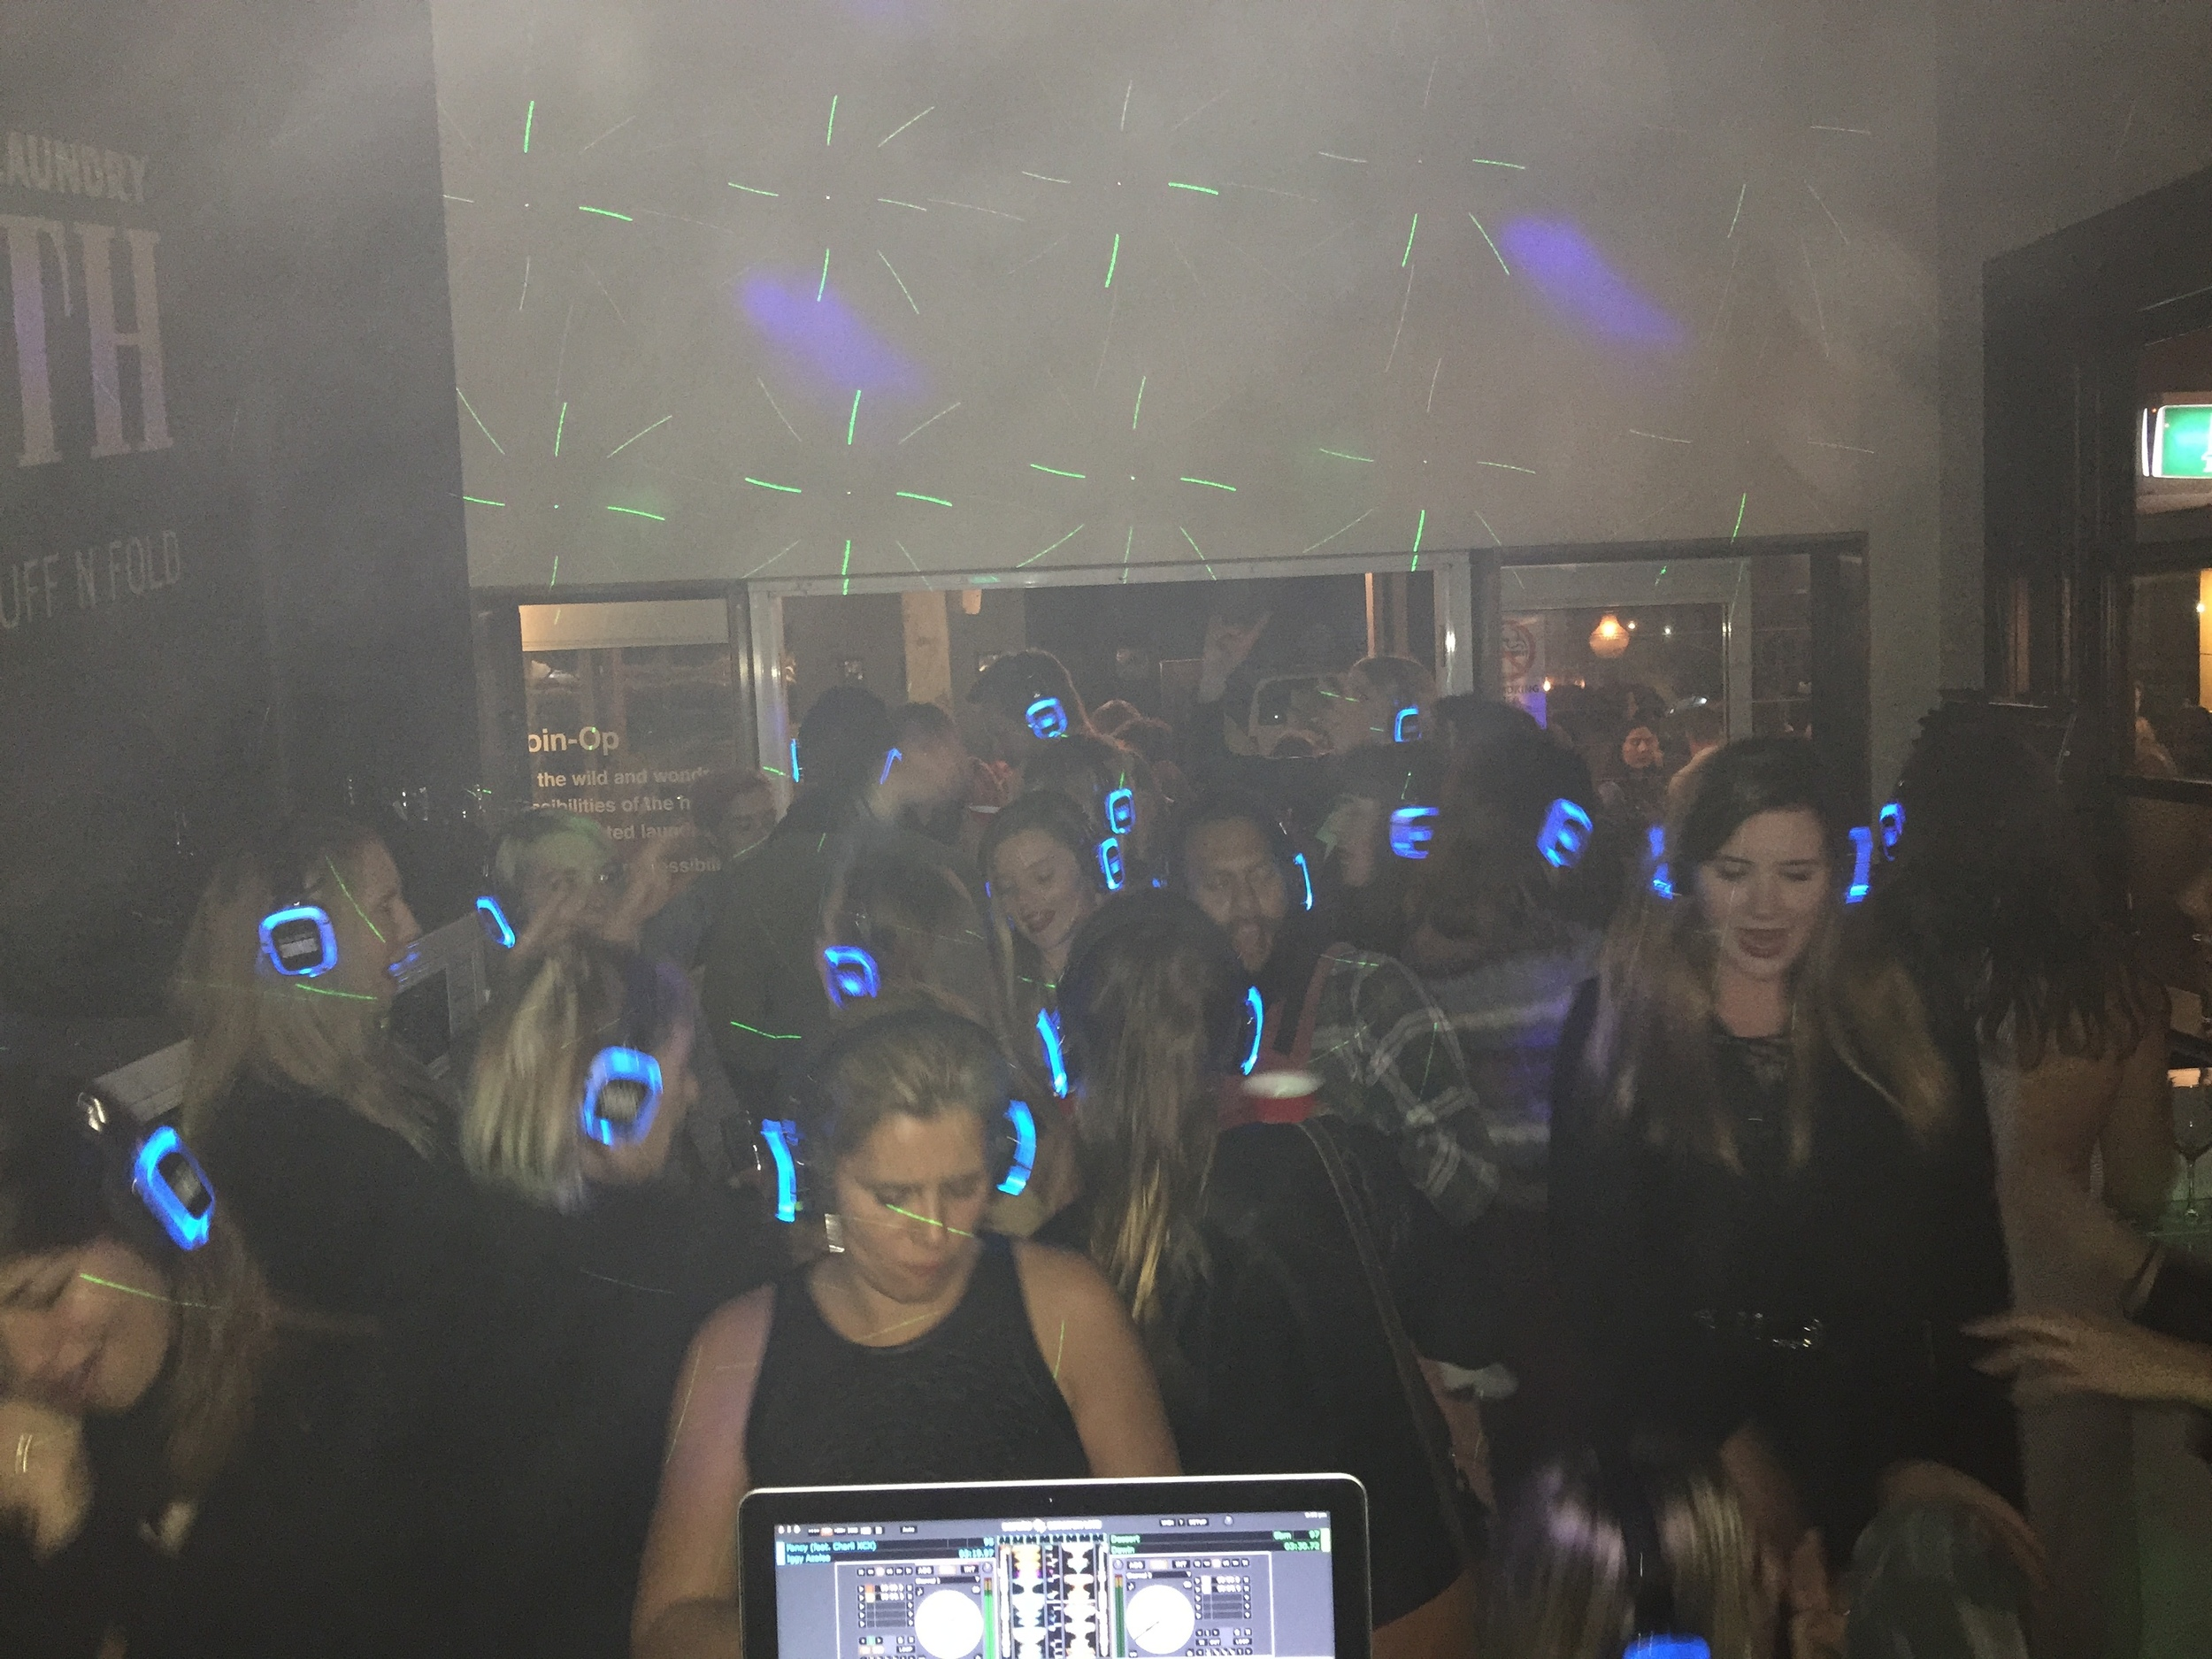 The View from the silent disco